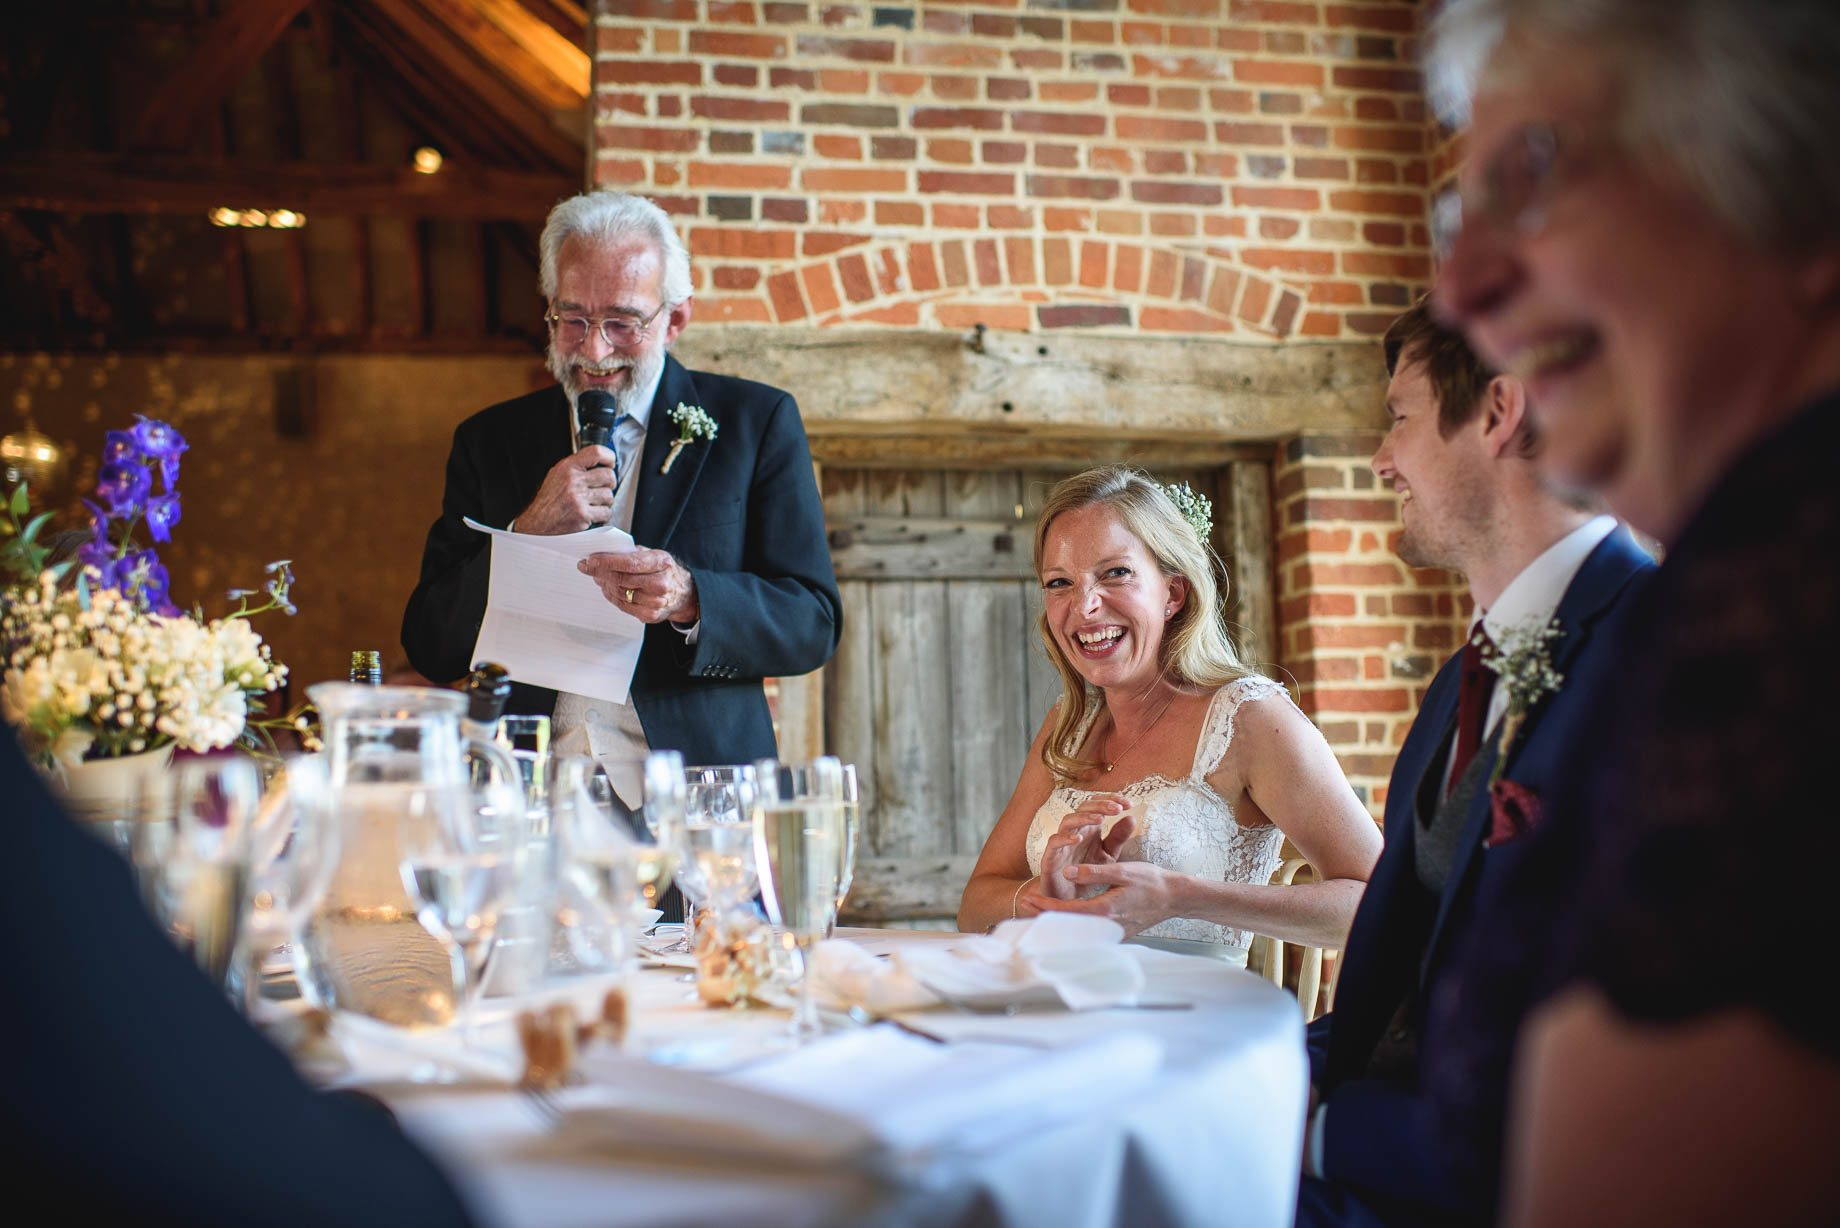 Bury Court Barn wedding photography by Guy Collier - Heather and Pat (133 of 170)